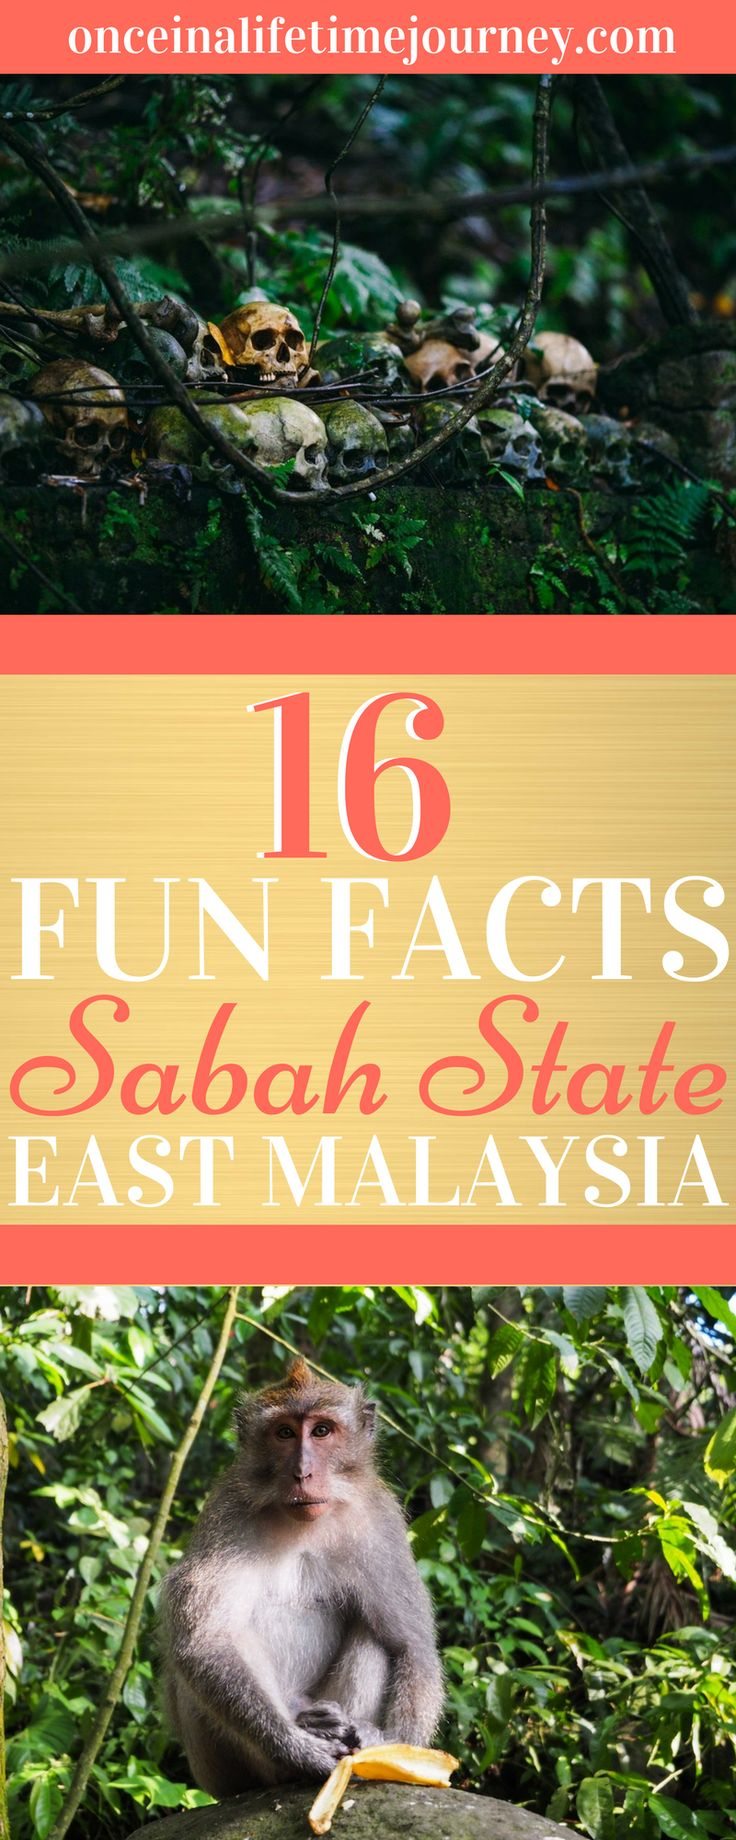 The geographical division of Borneo, where Malaysia's Sabah State is located, is sometimes confusing to understand. It is the third largest non-continental island in the world and shares space with the nations of Brunei and Indonesia. Click through to find out some more fun facts about Sabah State in Malaysian Borneo. | Once in a Lifetime Journey #borneo #malaysia #sabah #eastmalaysia #funfacts